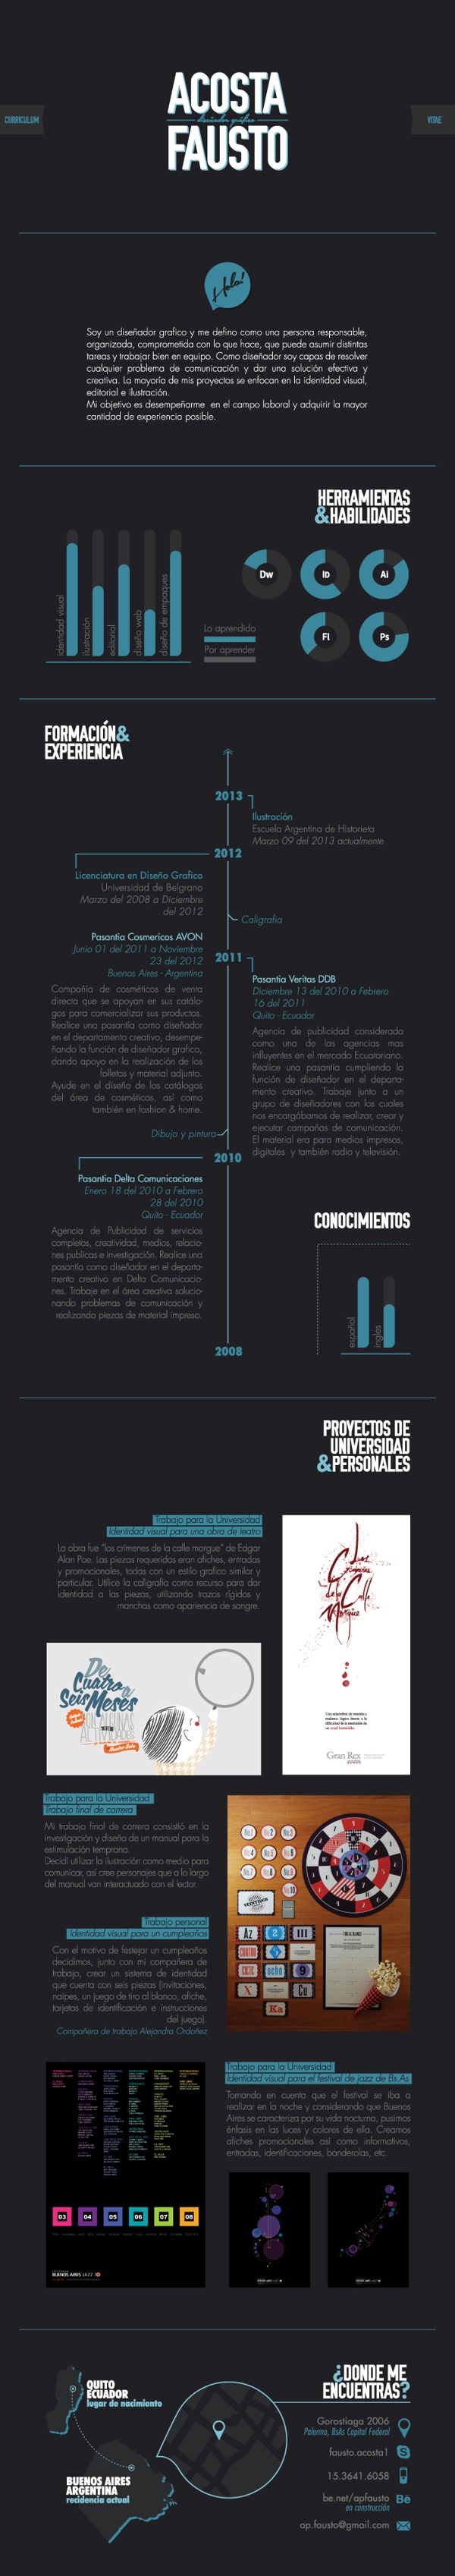 Curriculum Vitae by Fausto Acosta, via Behance